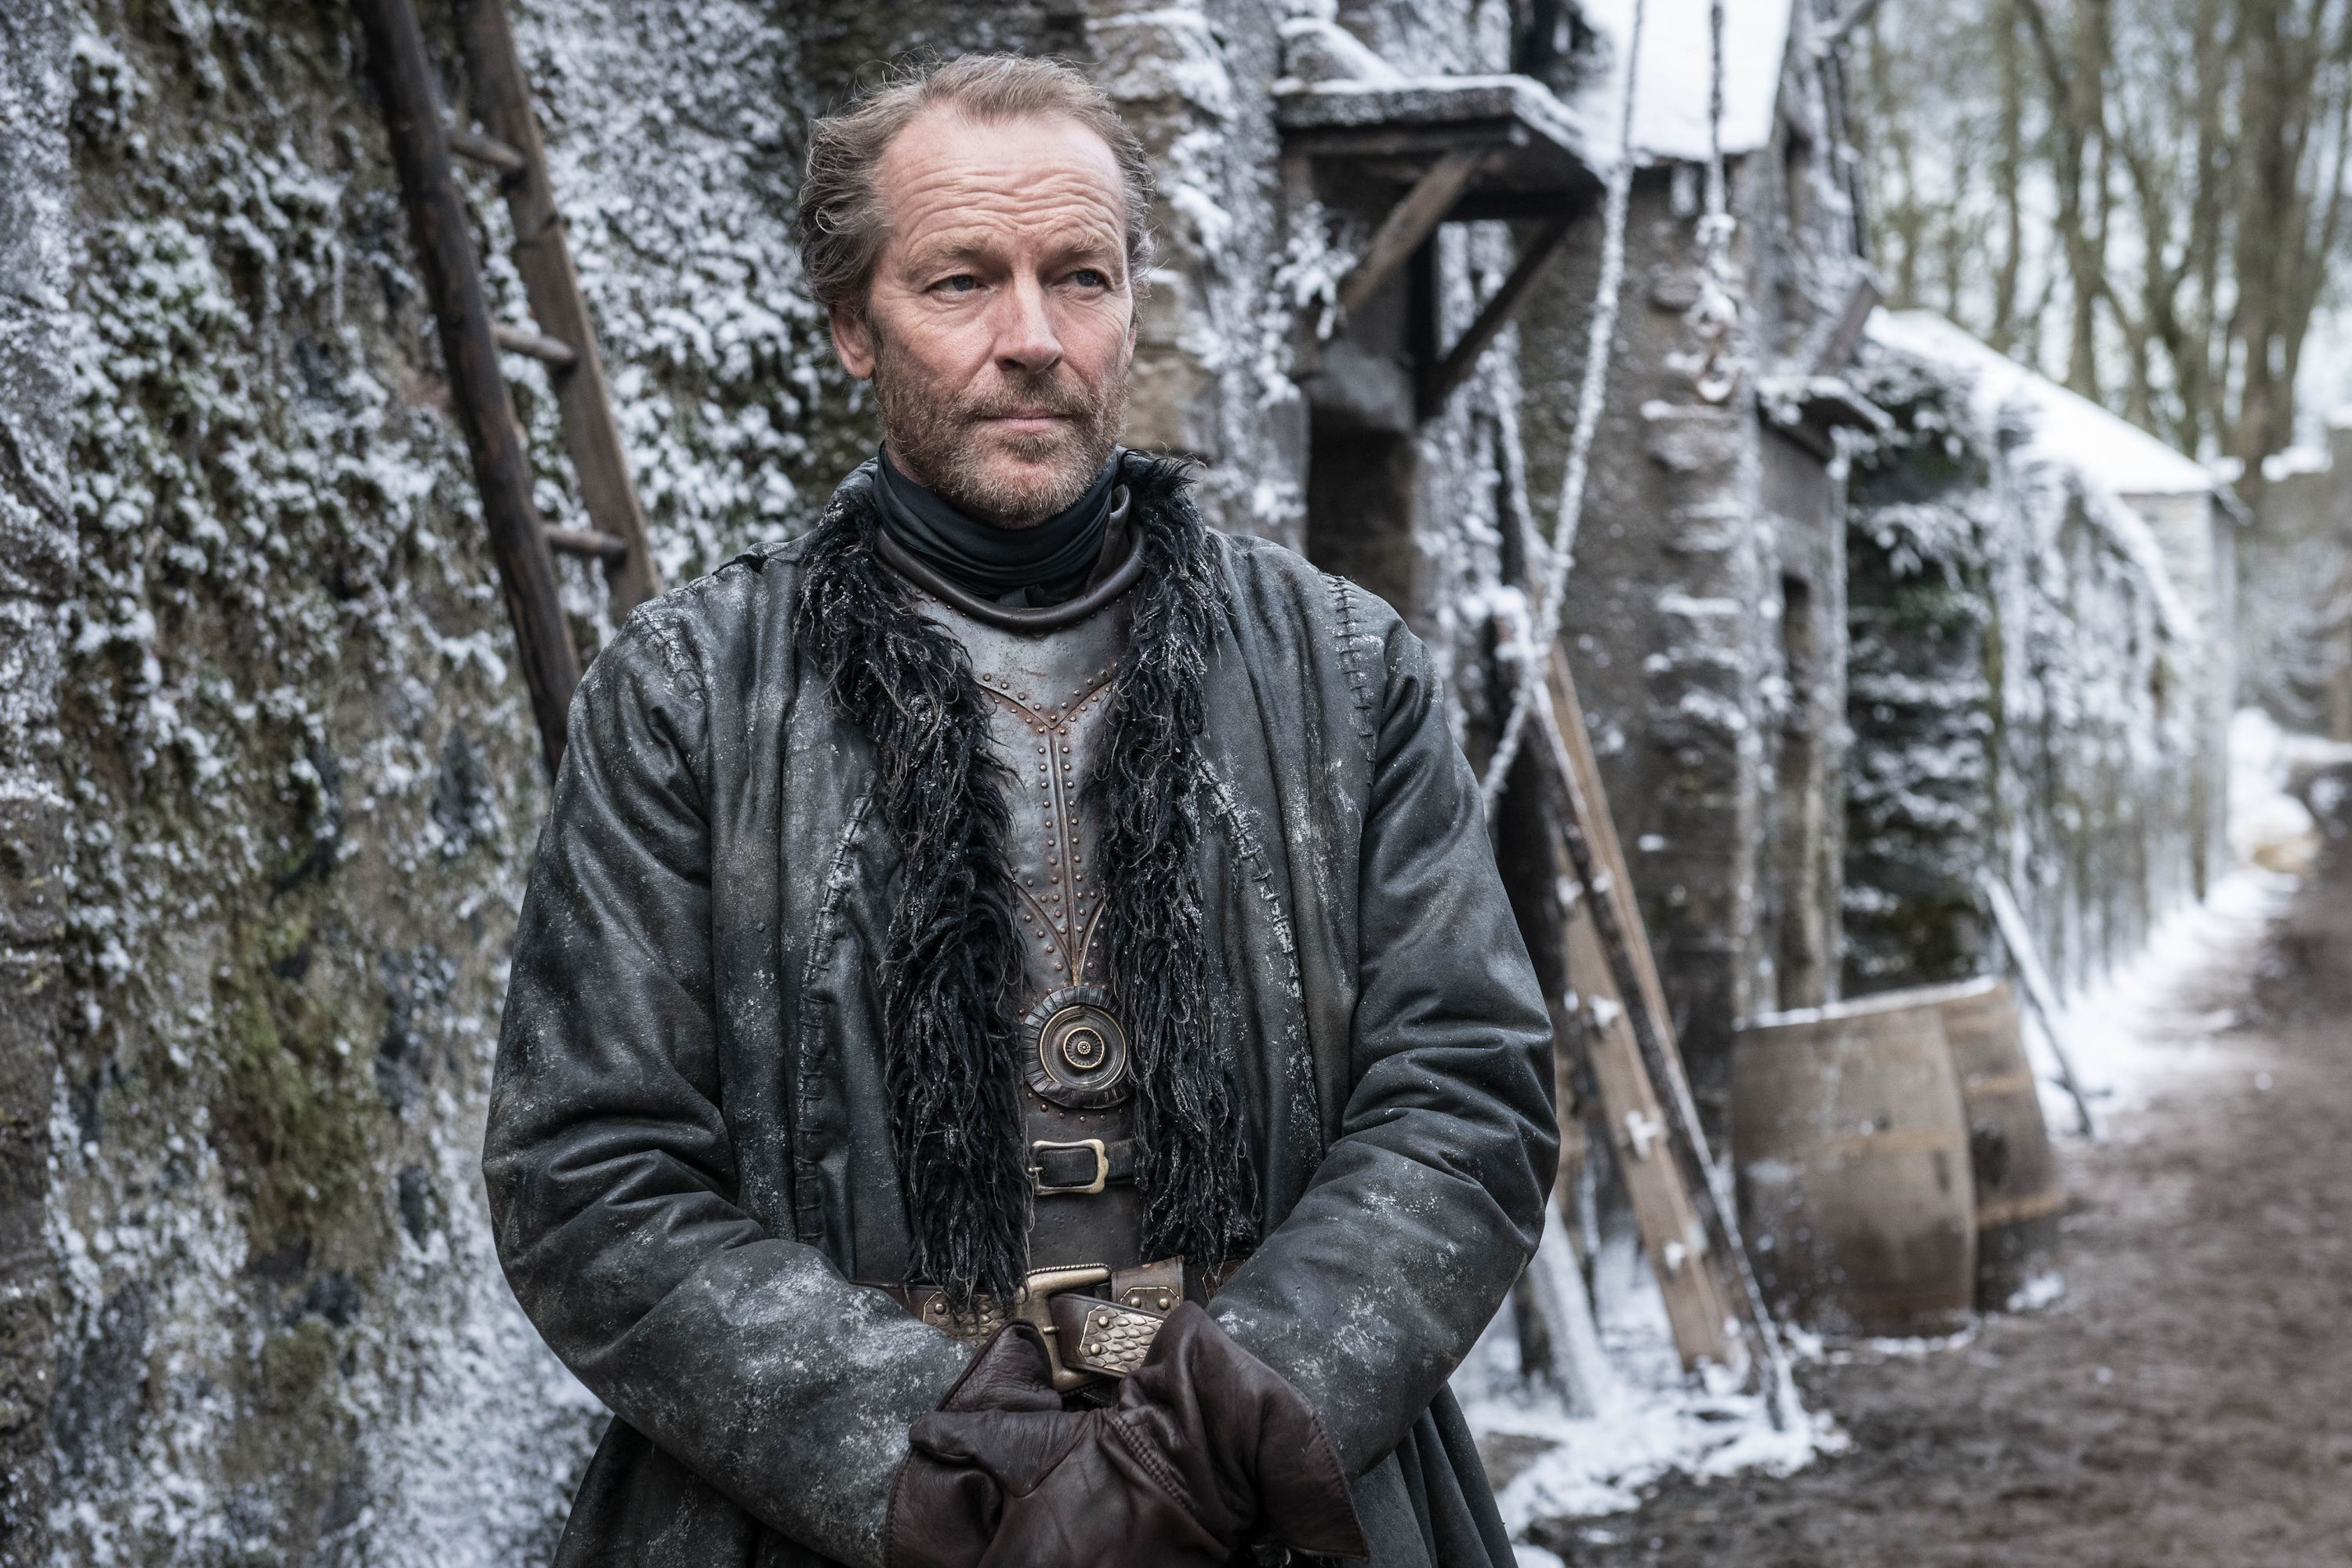 Game of Thrones Season 8: Departing Cast on Their Last Day